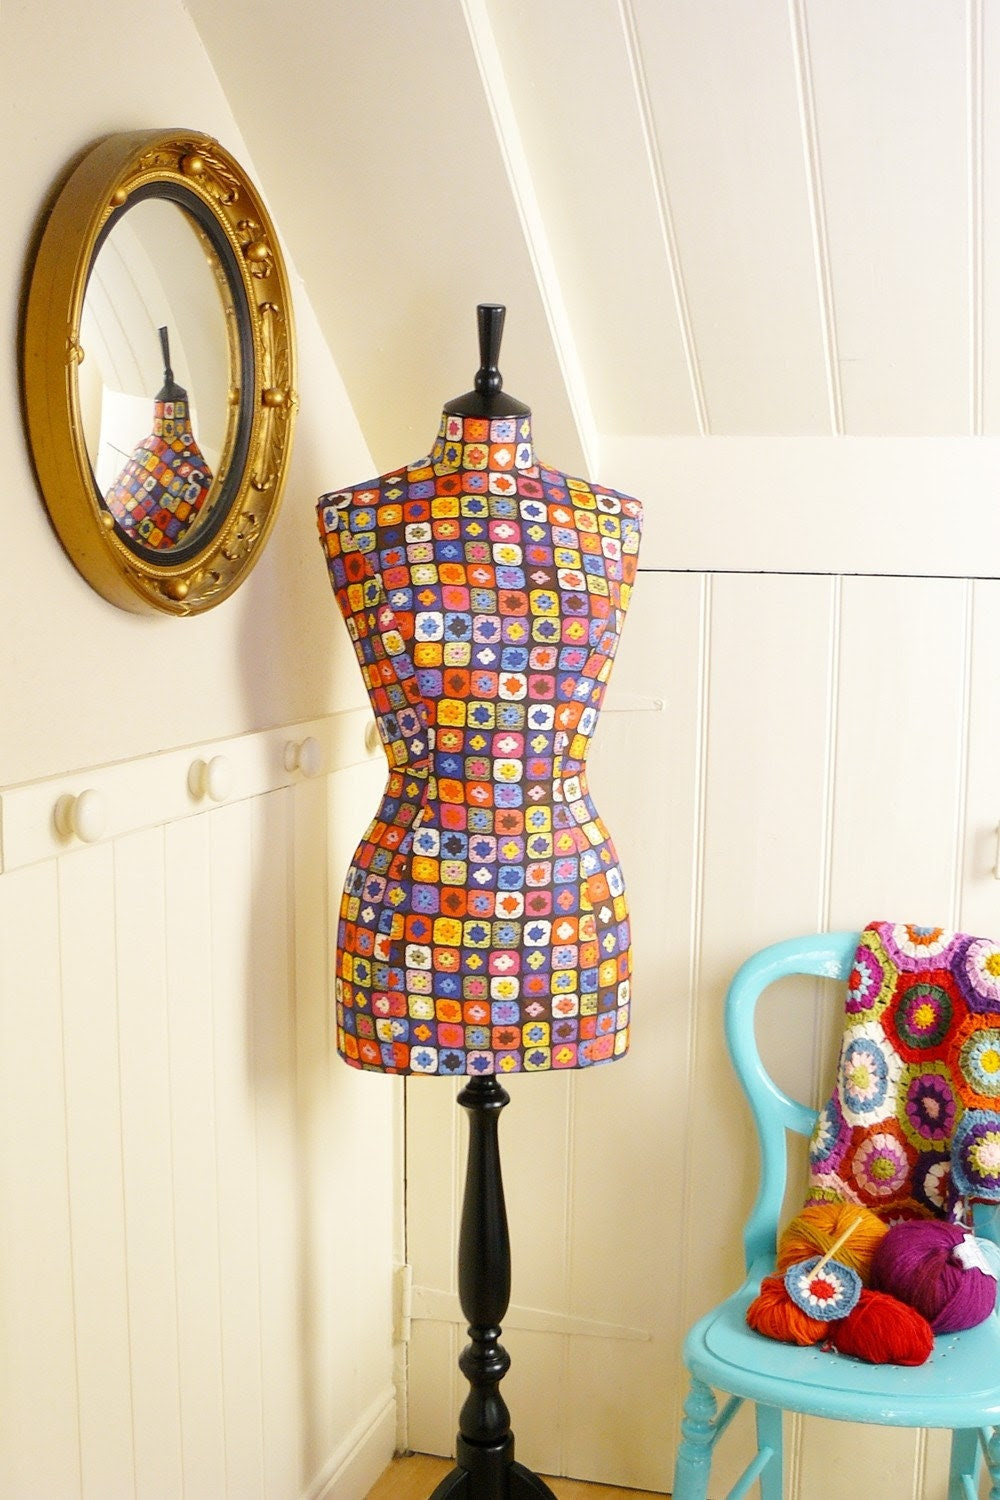 NEW Quirky Fun Crochet Mannequin Dressform - Yarn